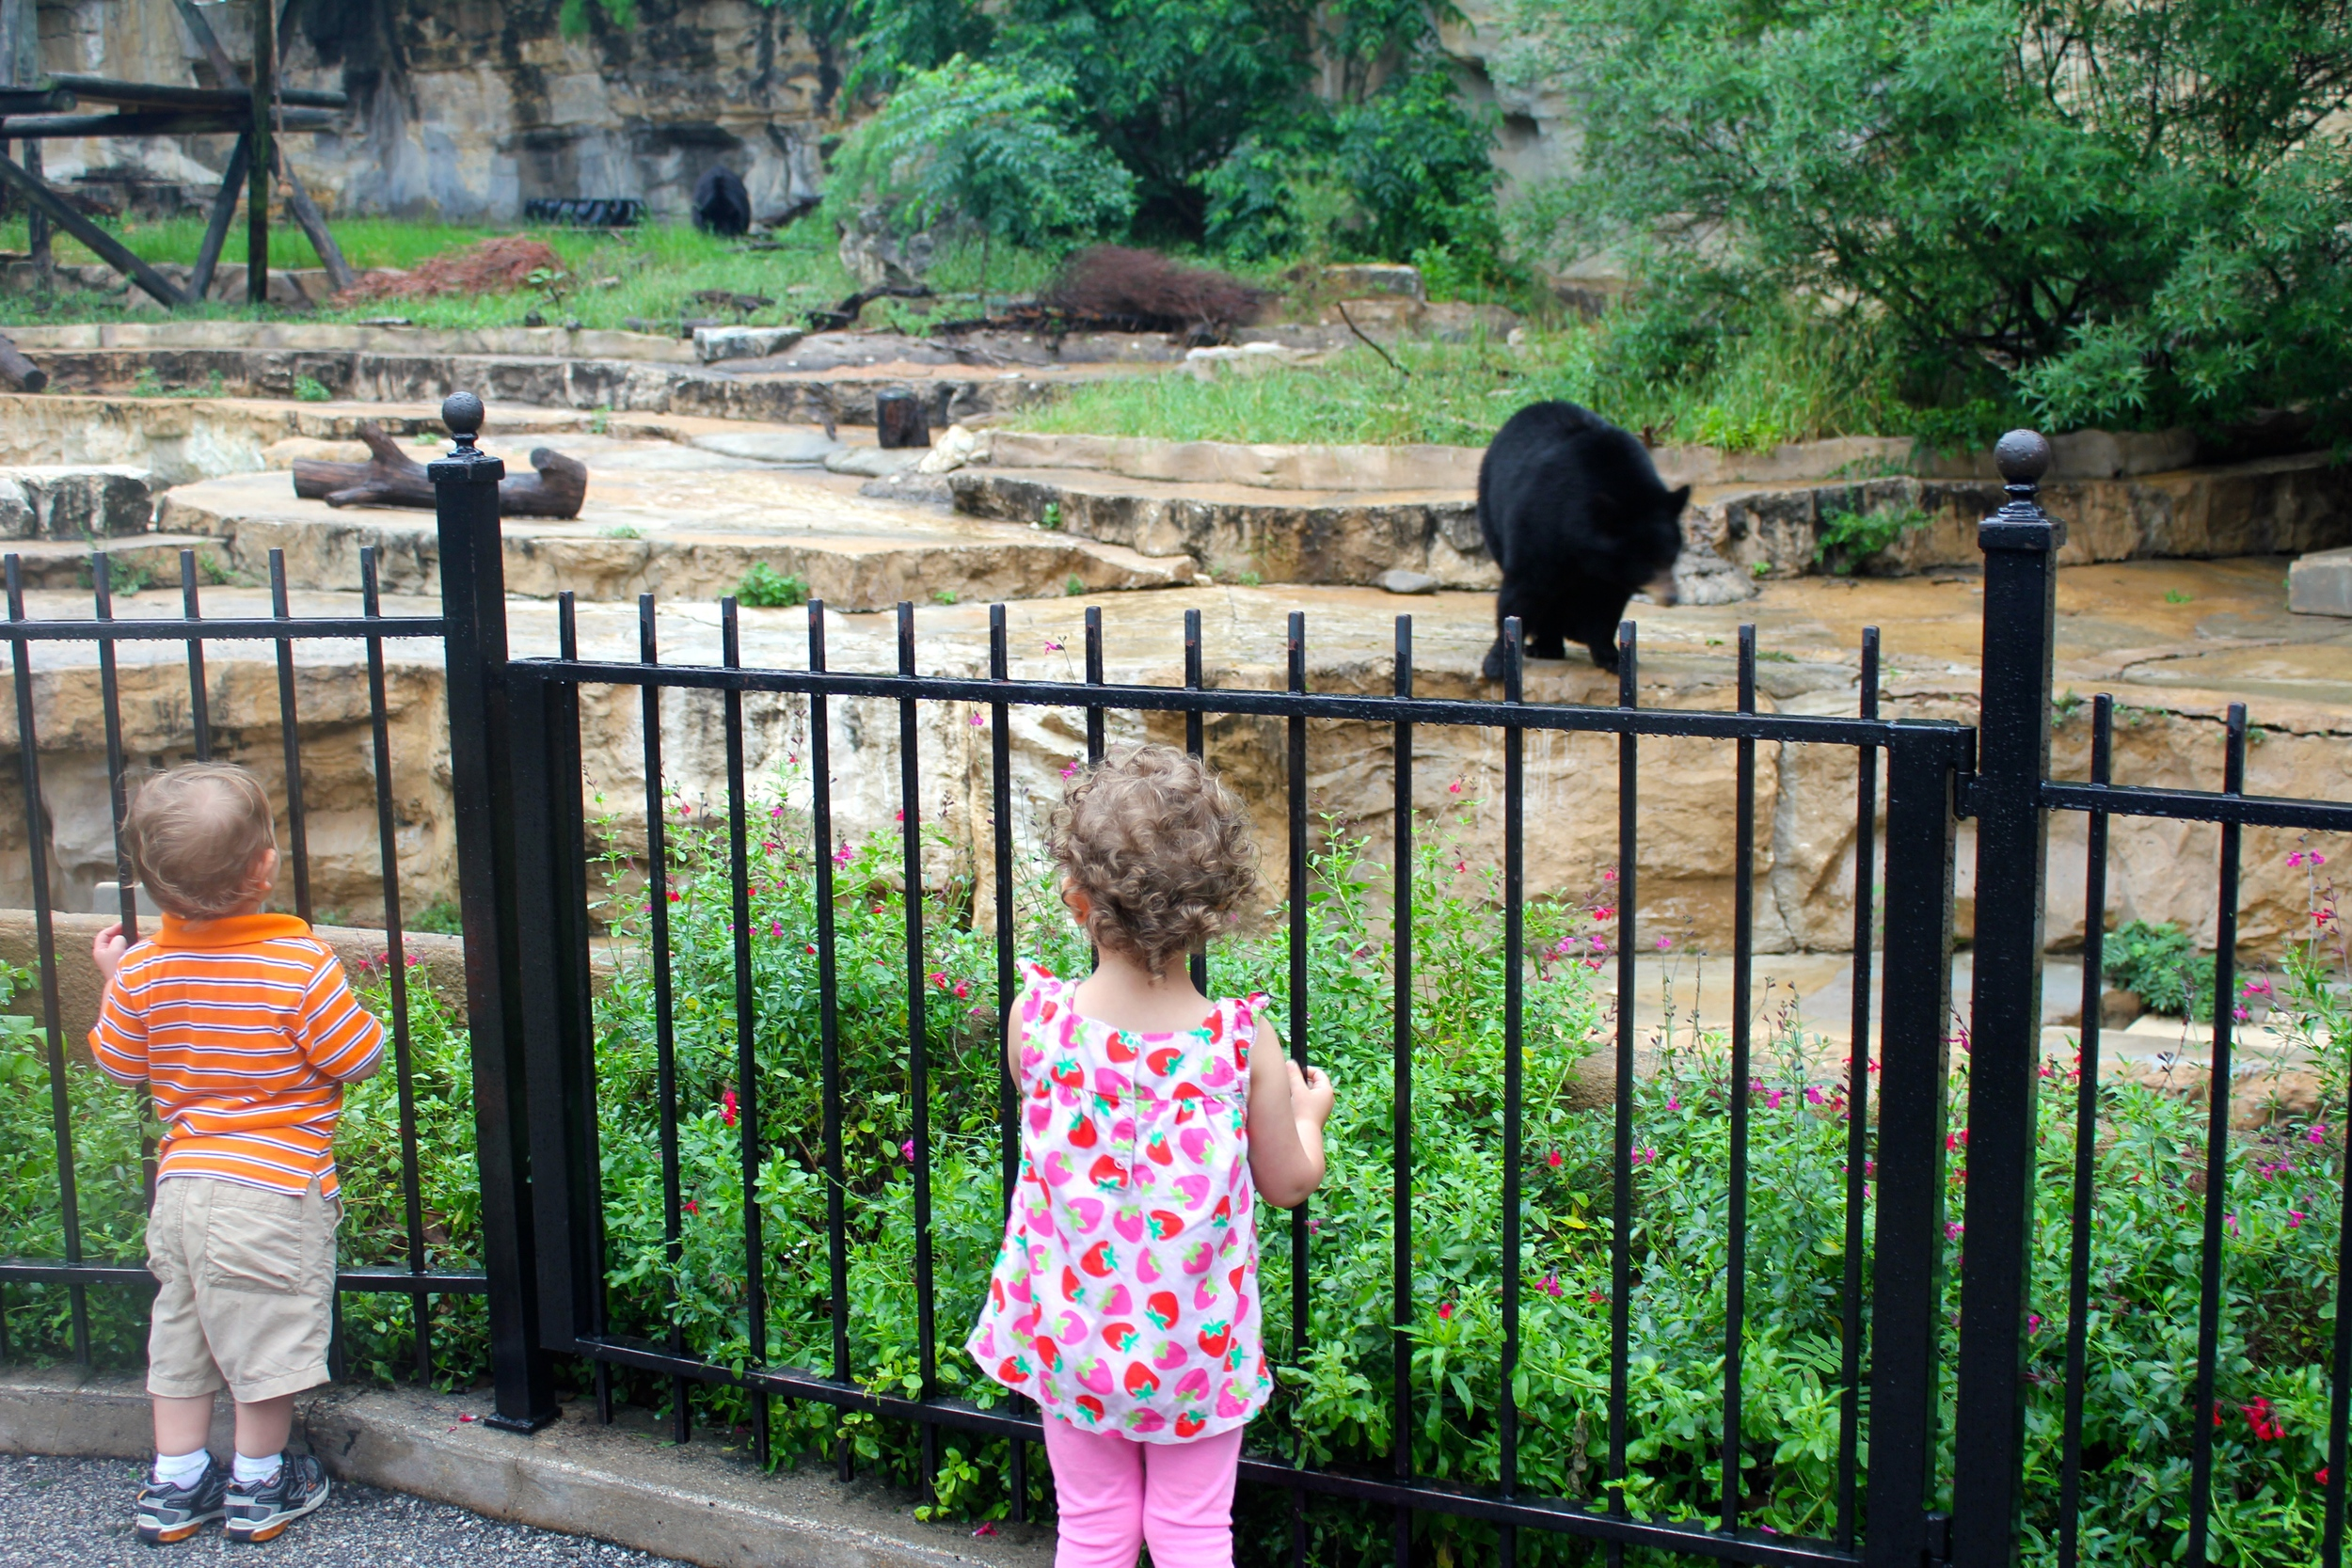 An American Black Bear and two small children, transfixed at the beingbefore them.